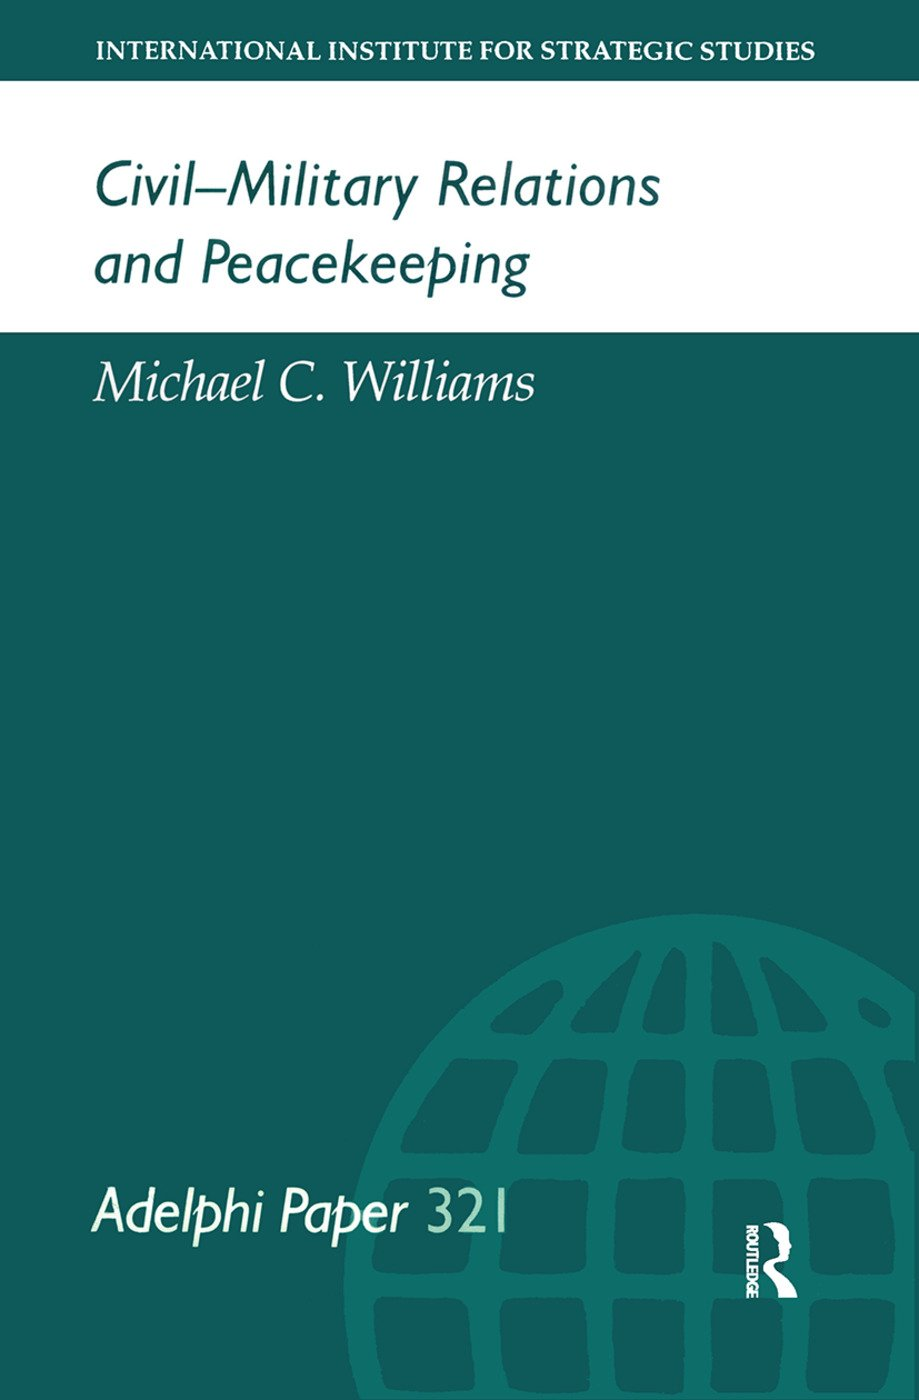 Civil-Military Relations and Peacekeeping: 1st Edition (Paperback) book cover